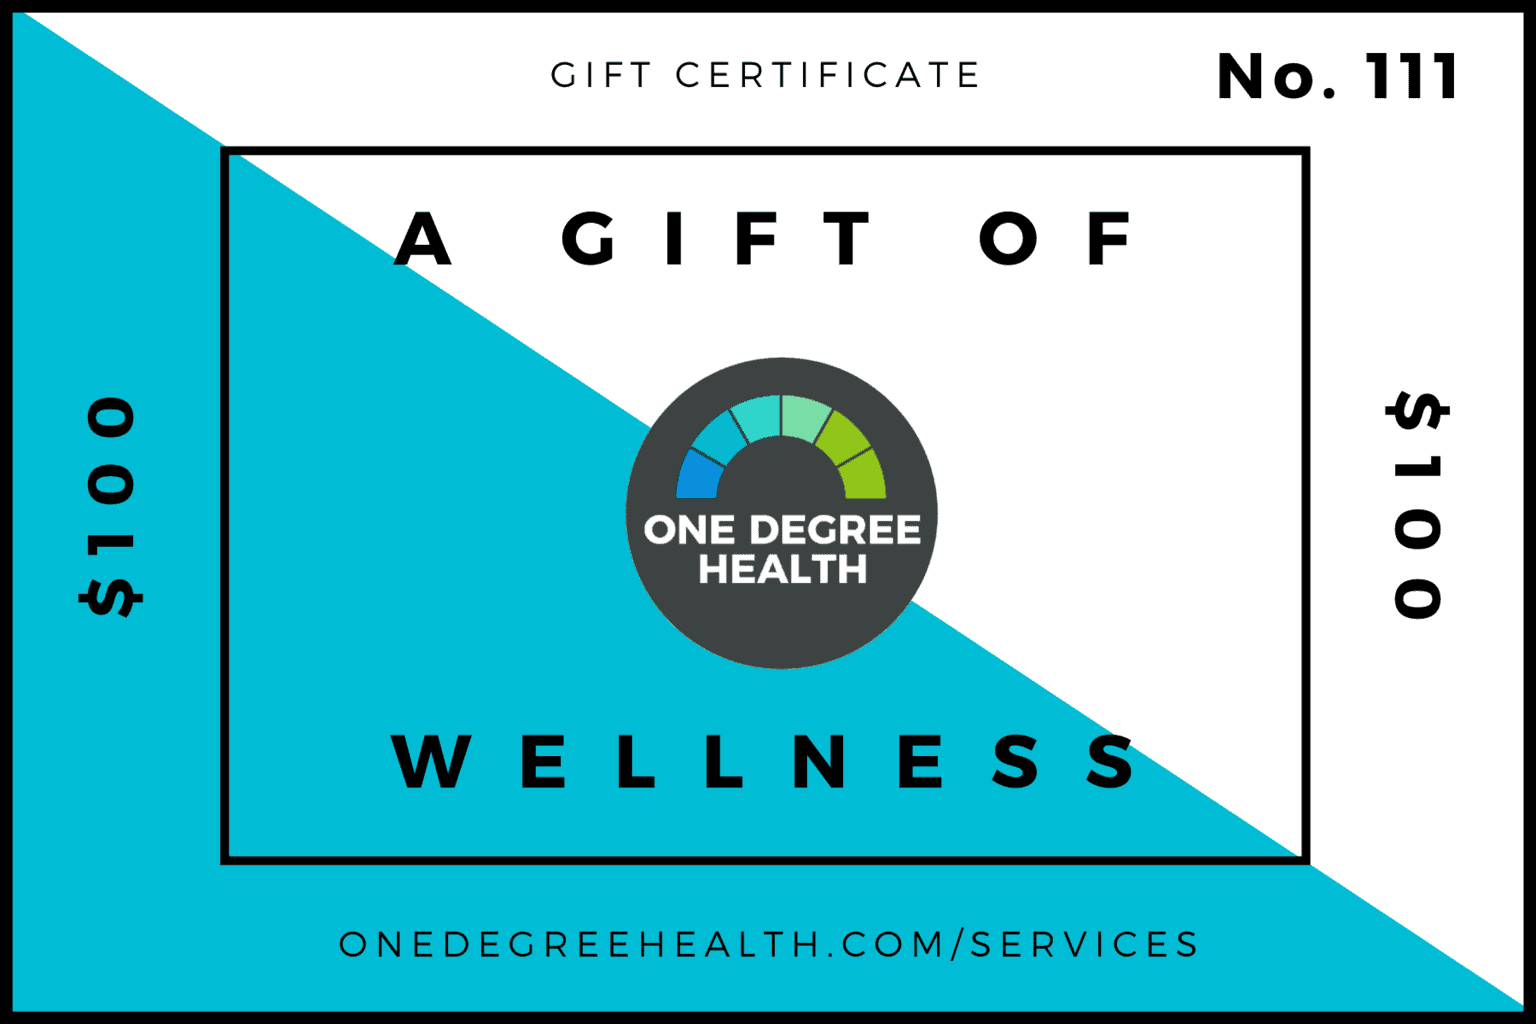 Save 20% on One Degree Health Gift Certificates